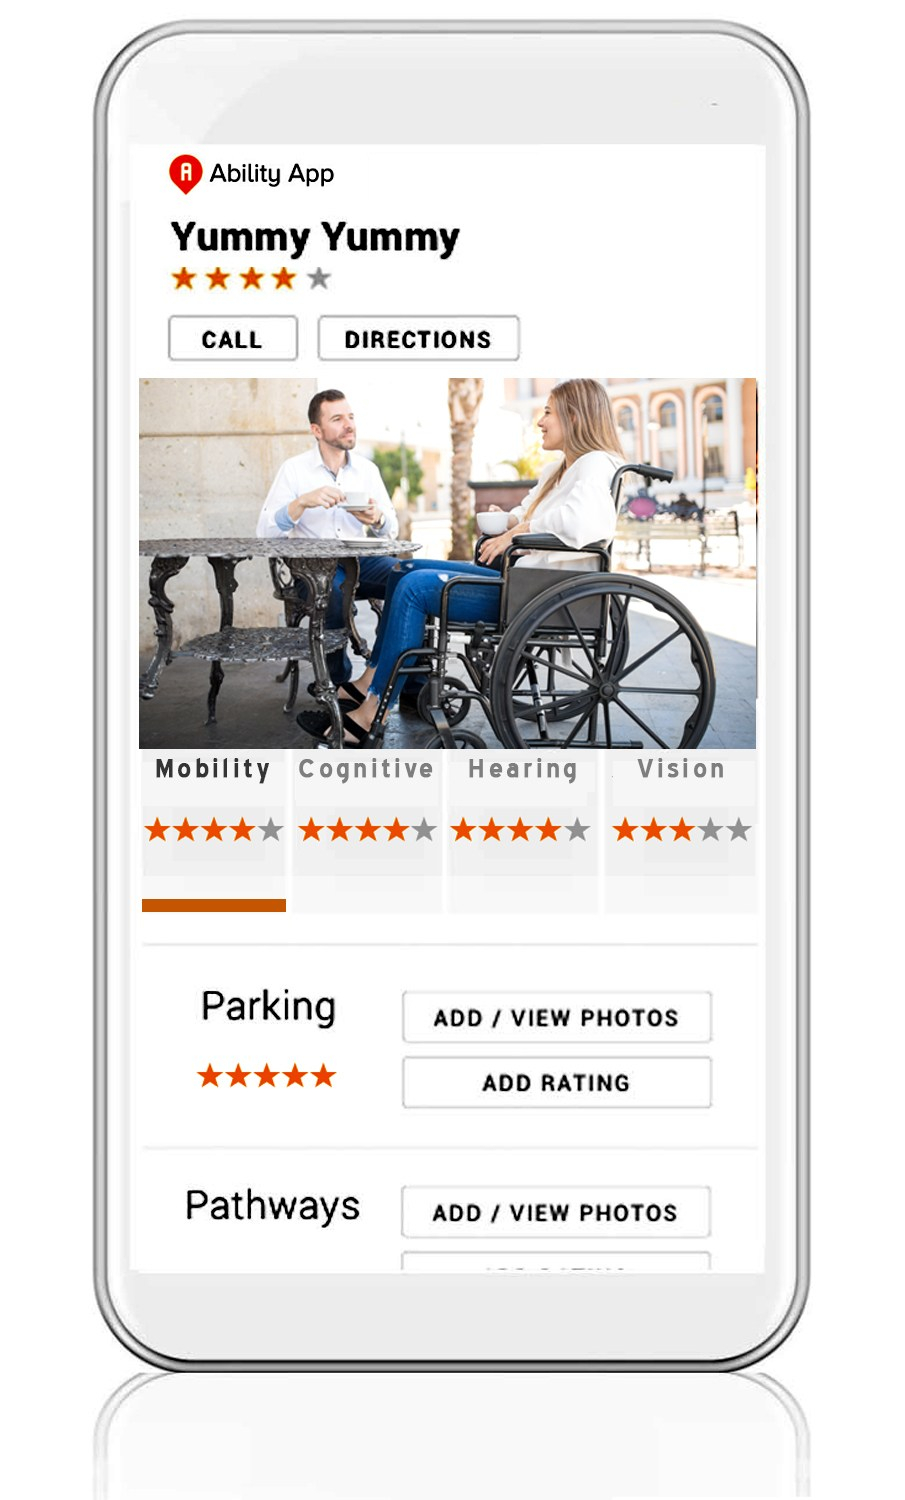 This is an image of the Ability App on a mobile device. The app displays the accessibility ratings, images and comments of a business.